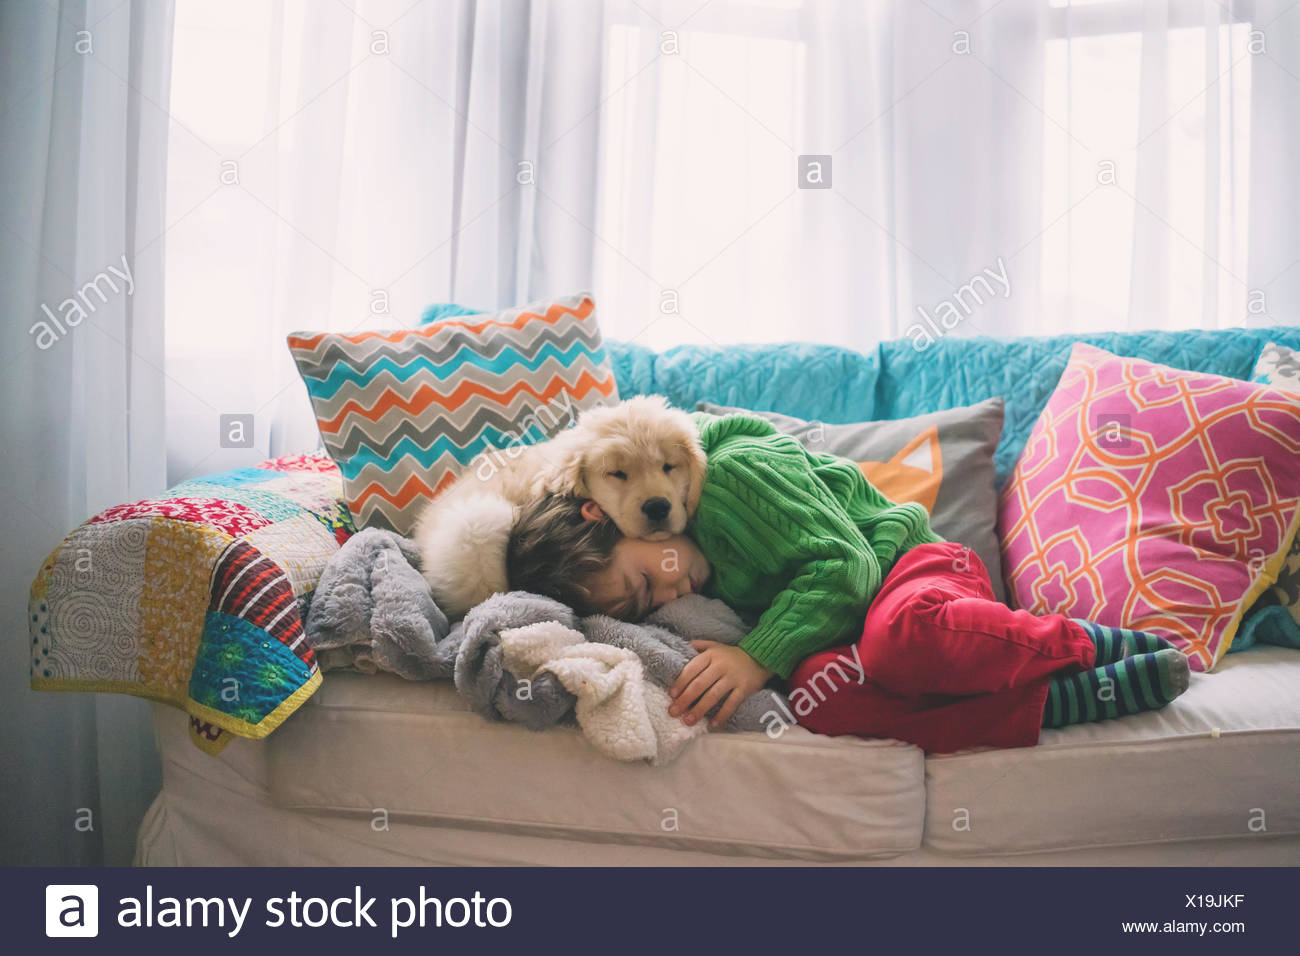 Boy sleeping on sofa with golden retriever puppy dog - Stock Image